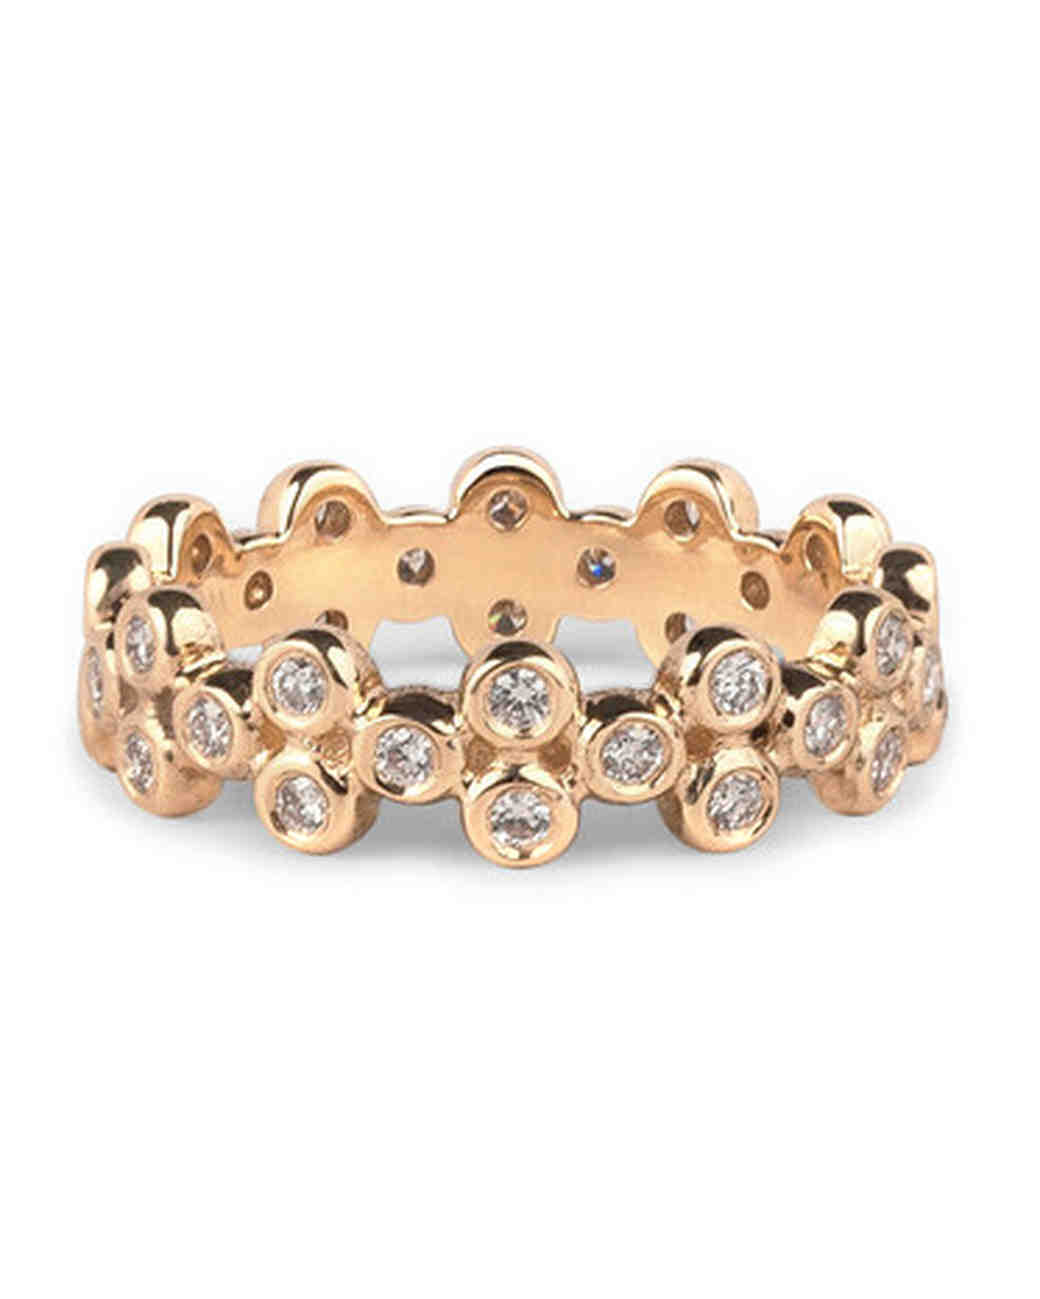 eternity-bands-new-shapes-stone-fox-bride-0515.jpg